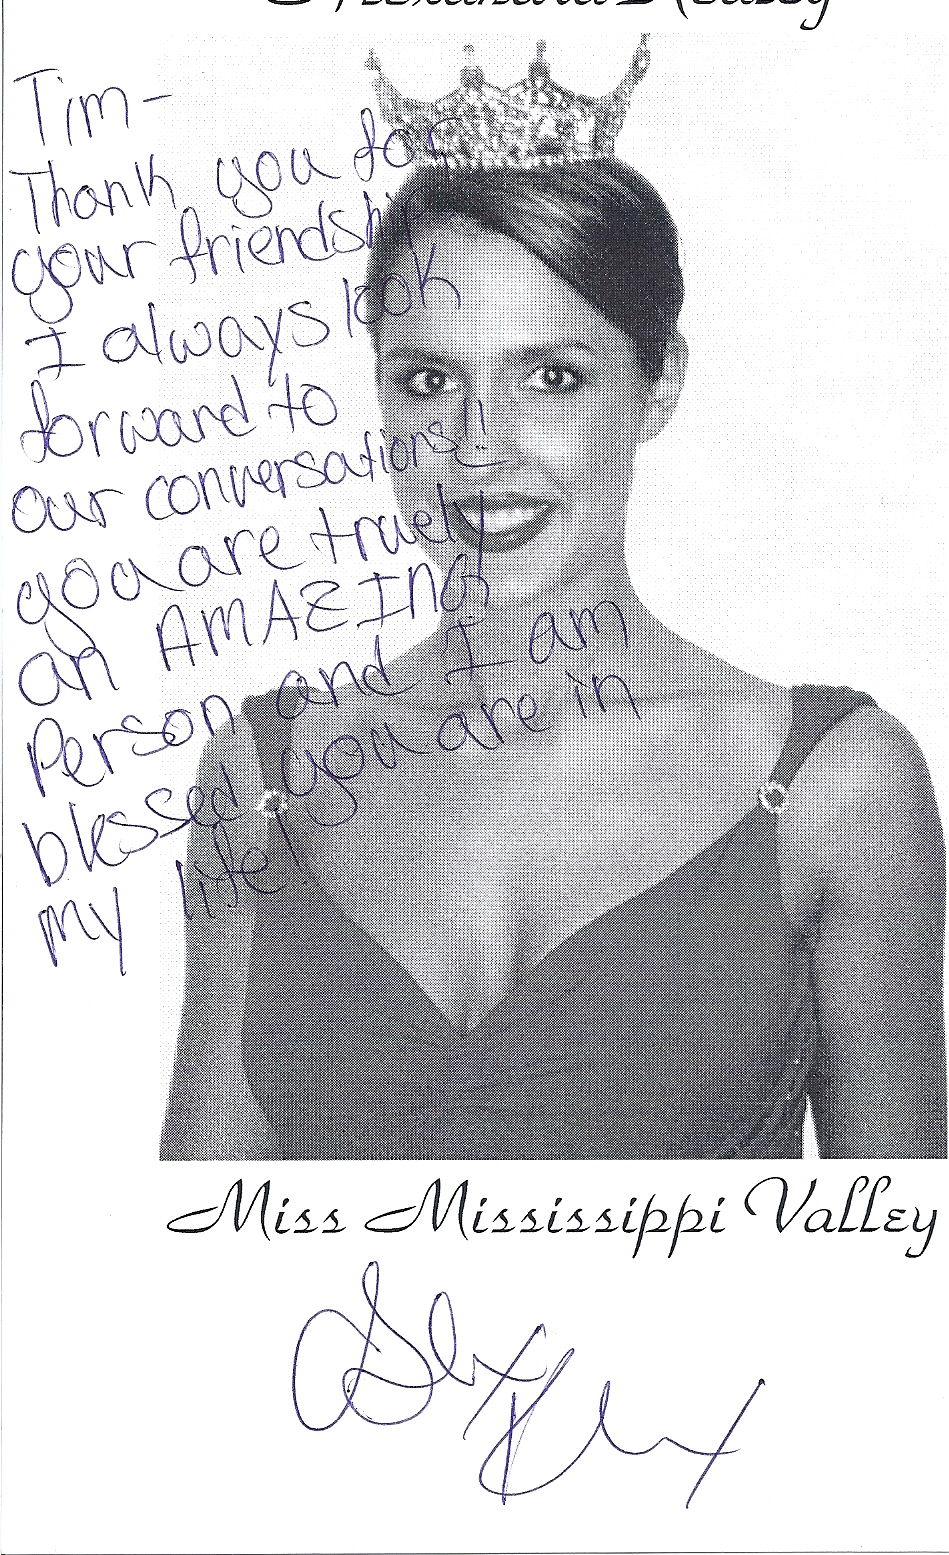 Alexandra Kealey, Miss Mississippi Valley